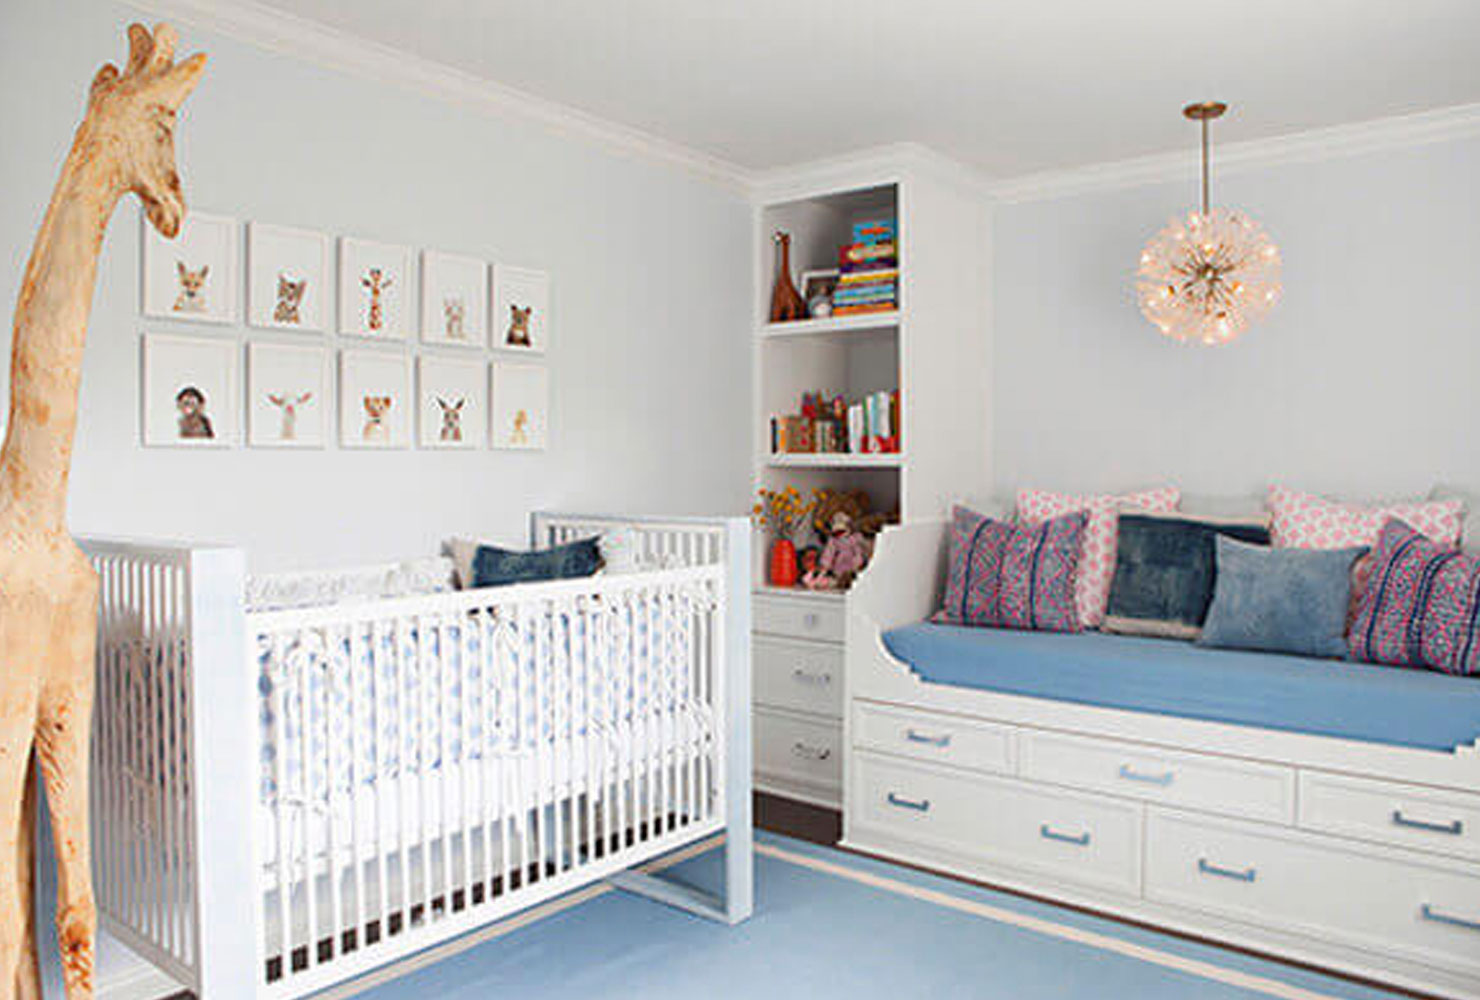 Pasel blue and gray nursery with crib.